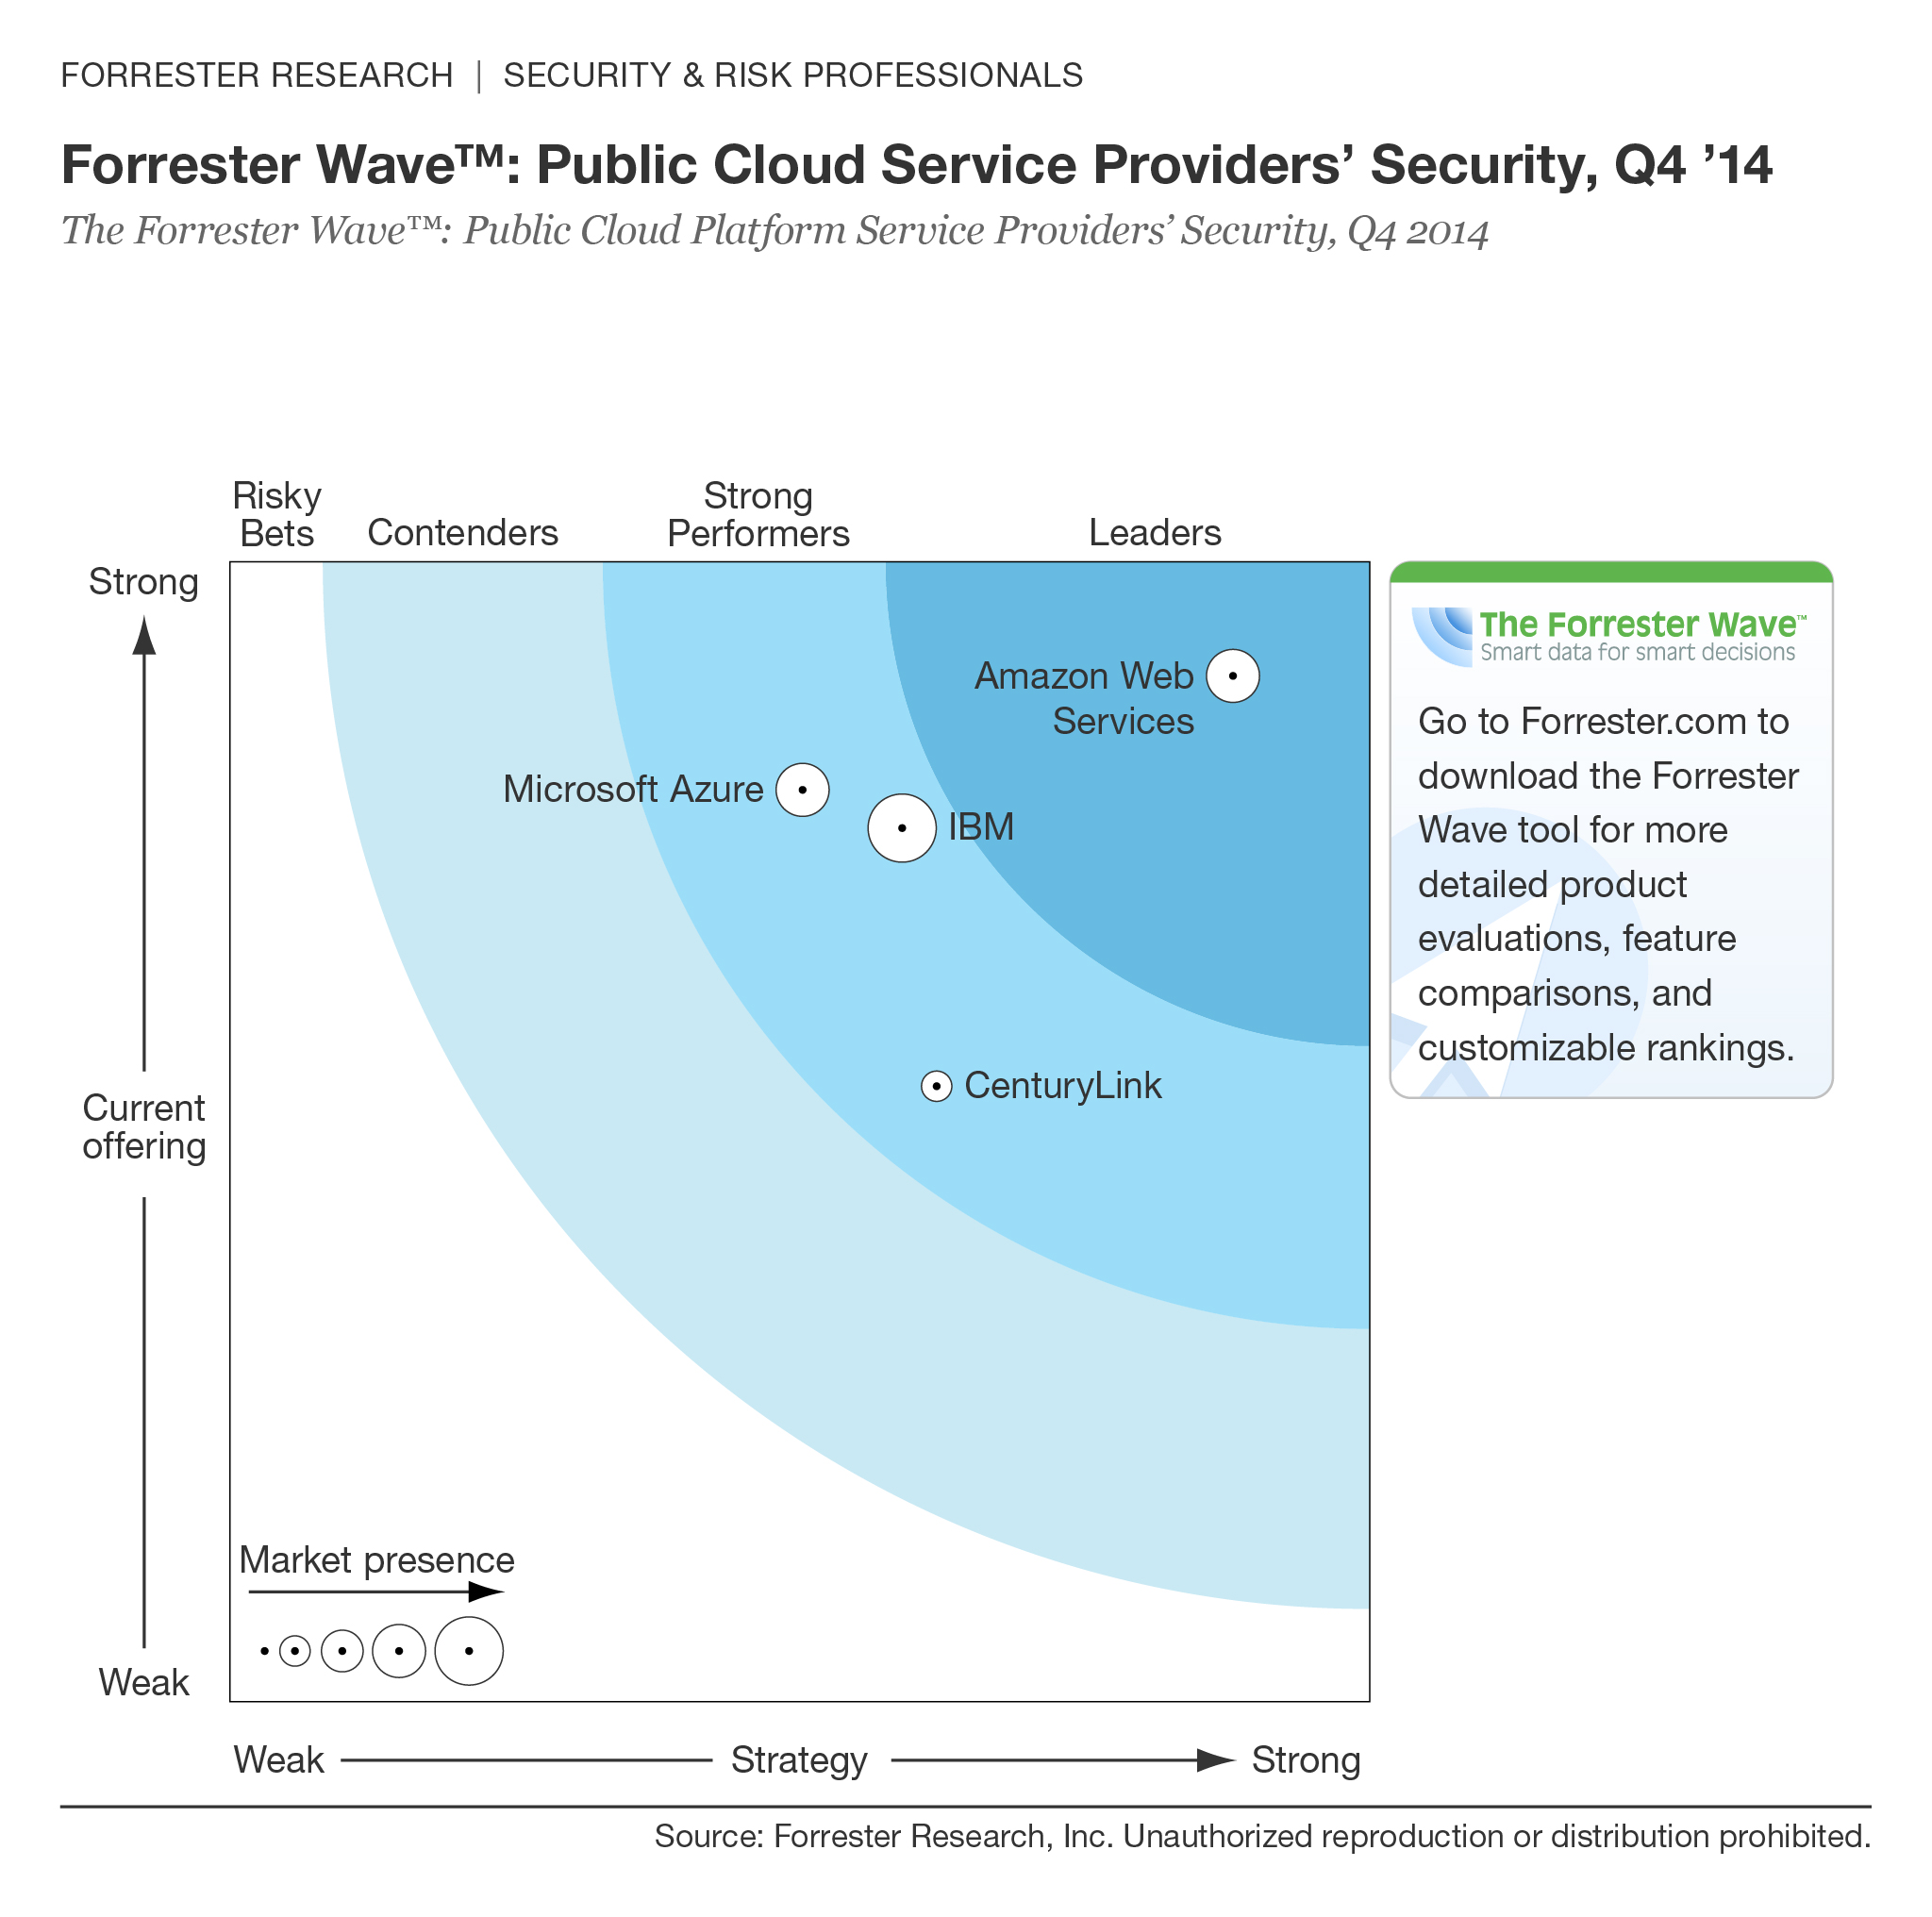 Forrester Security Wave Q4 2014